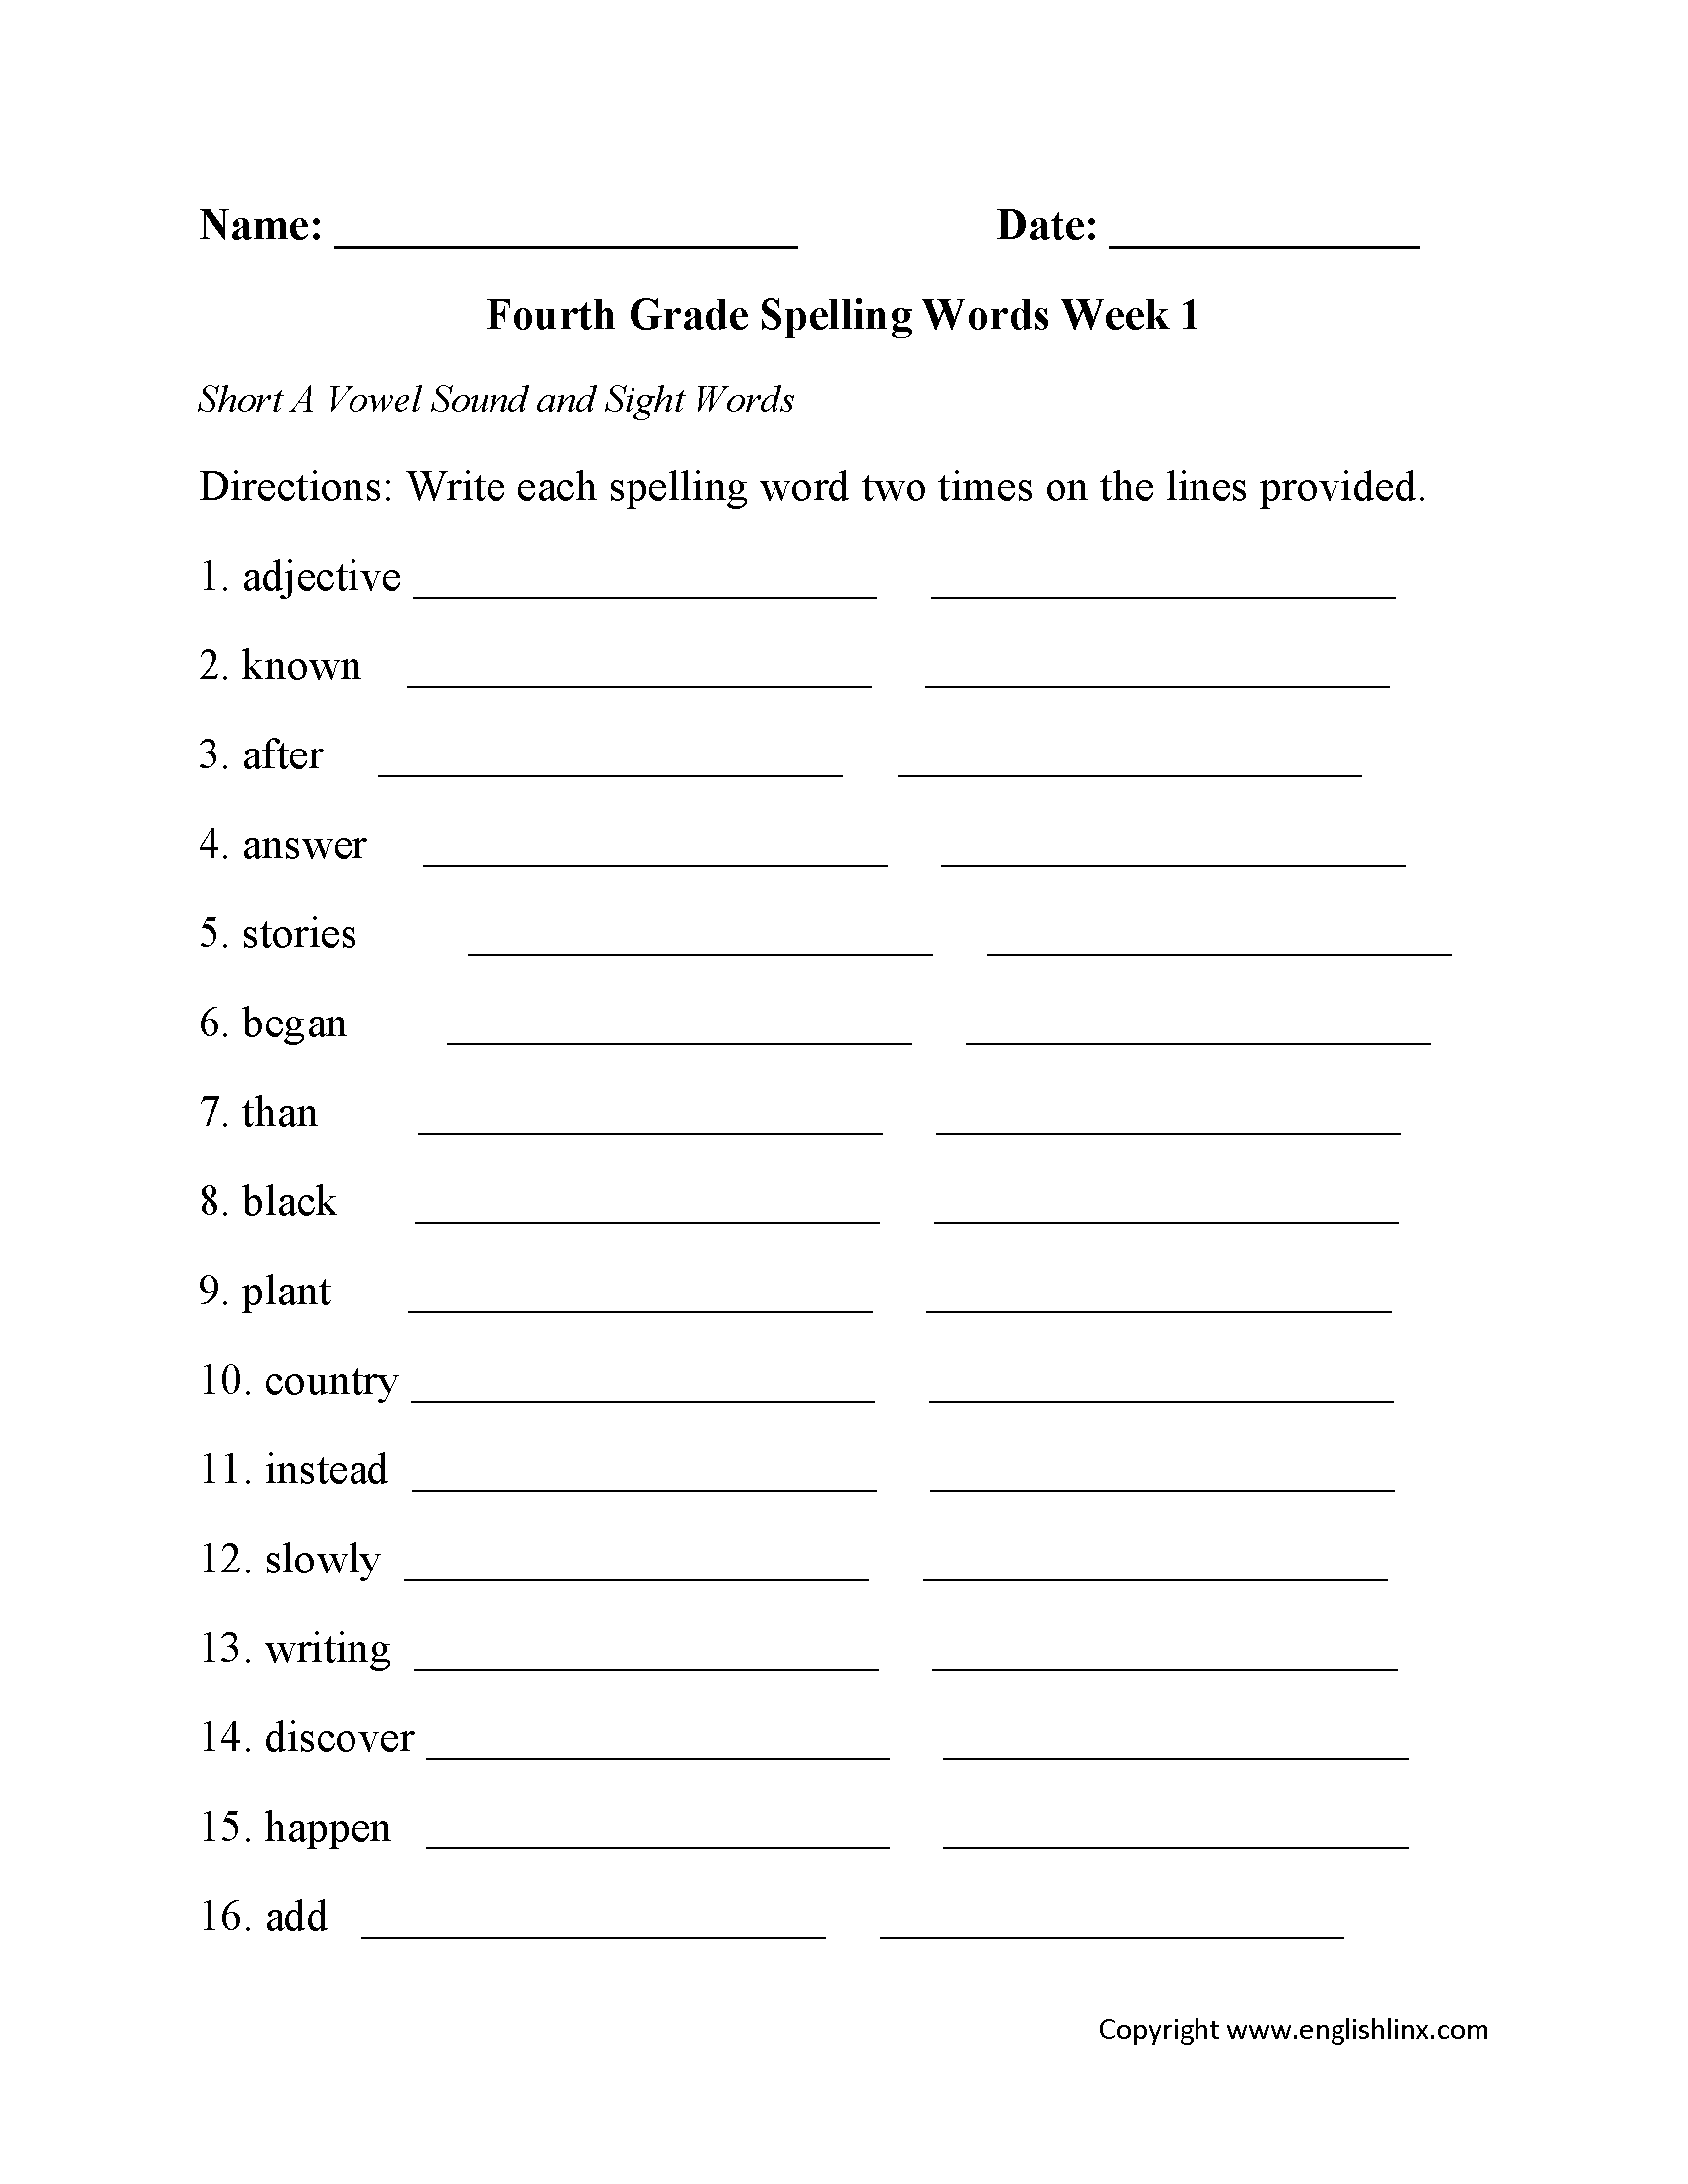 Spelling Worksheets – Spelling Worksheets for Grade 4